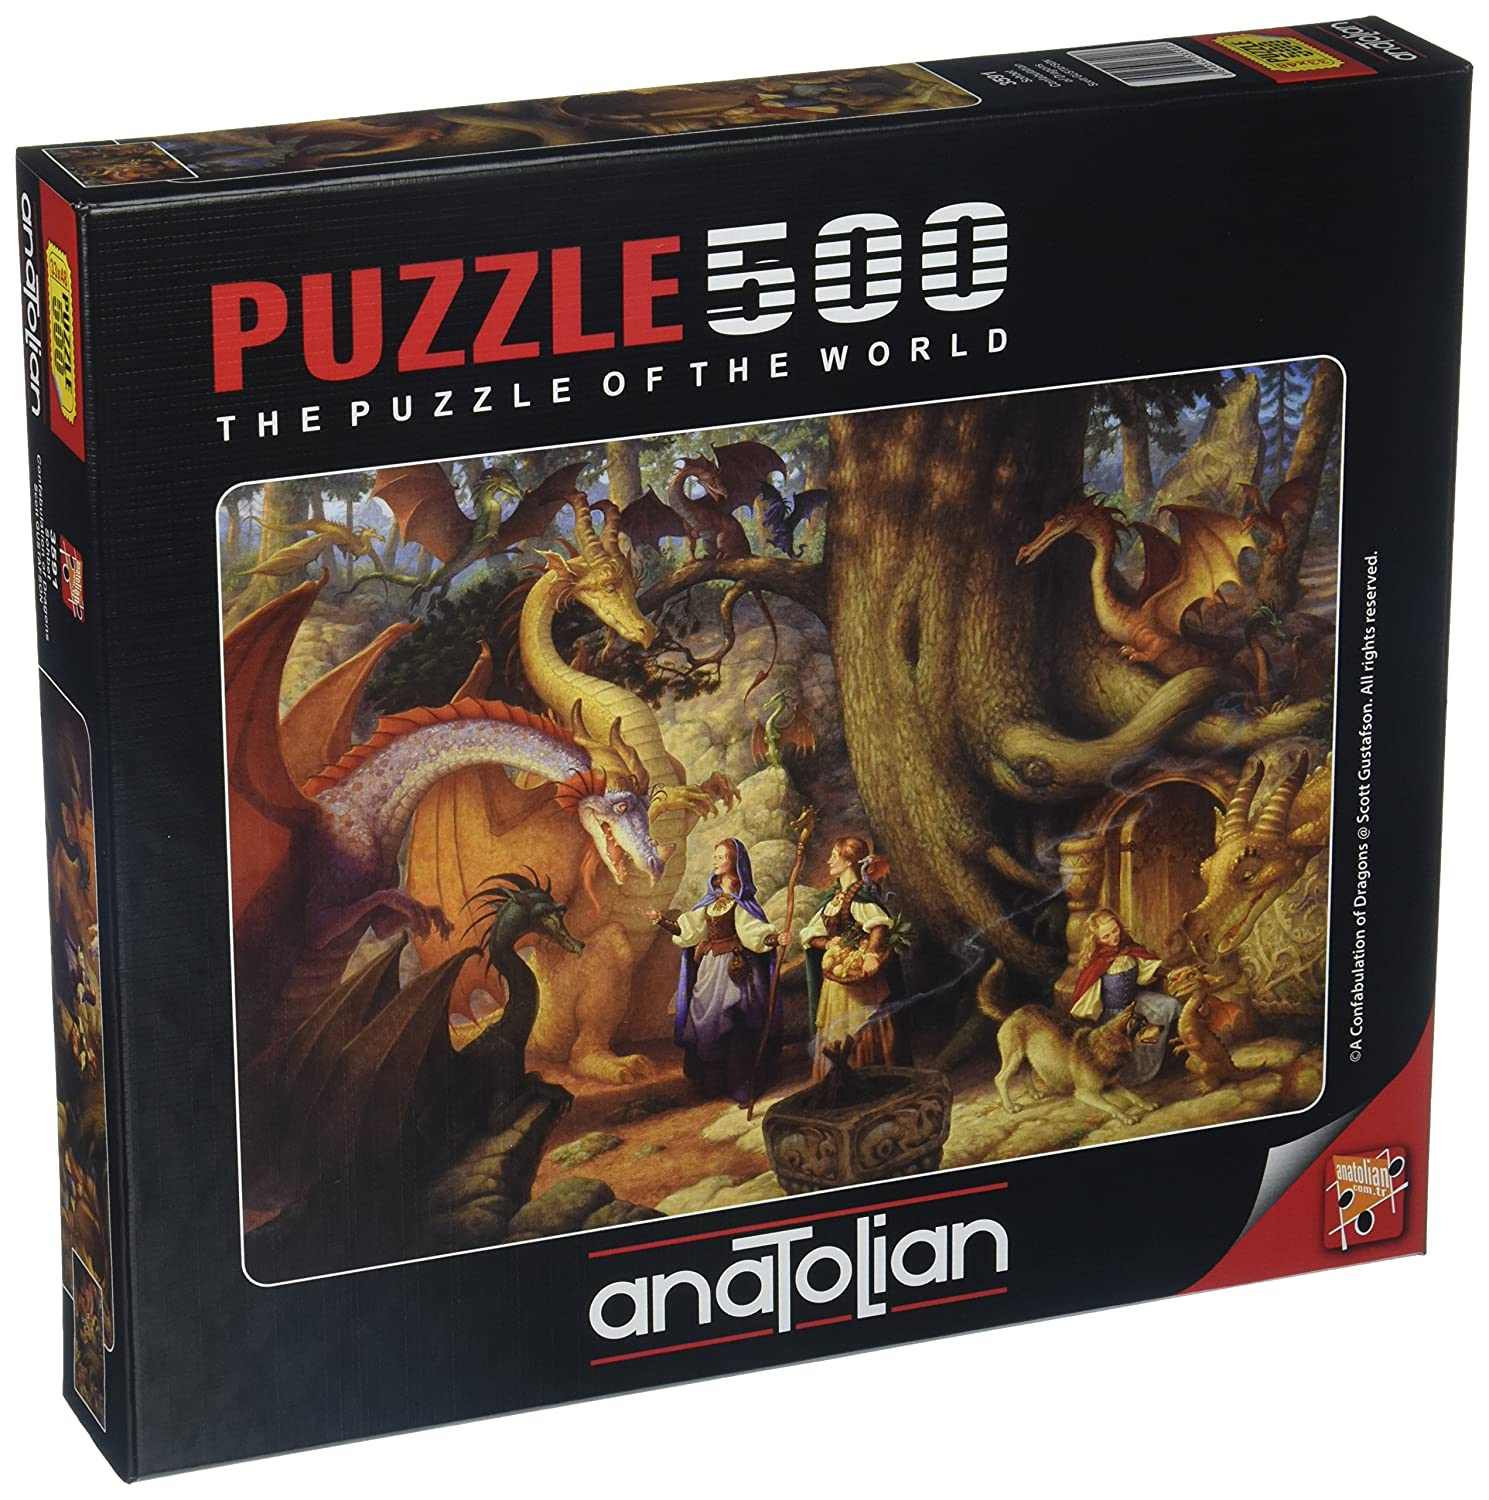 Anatolian ANA3591 Confabulation of Dragons Jigsaw Puzzle LIOU8